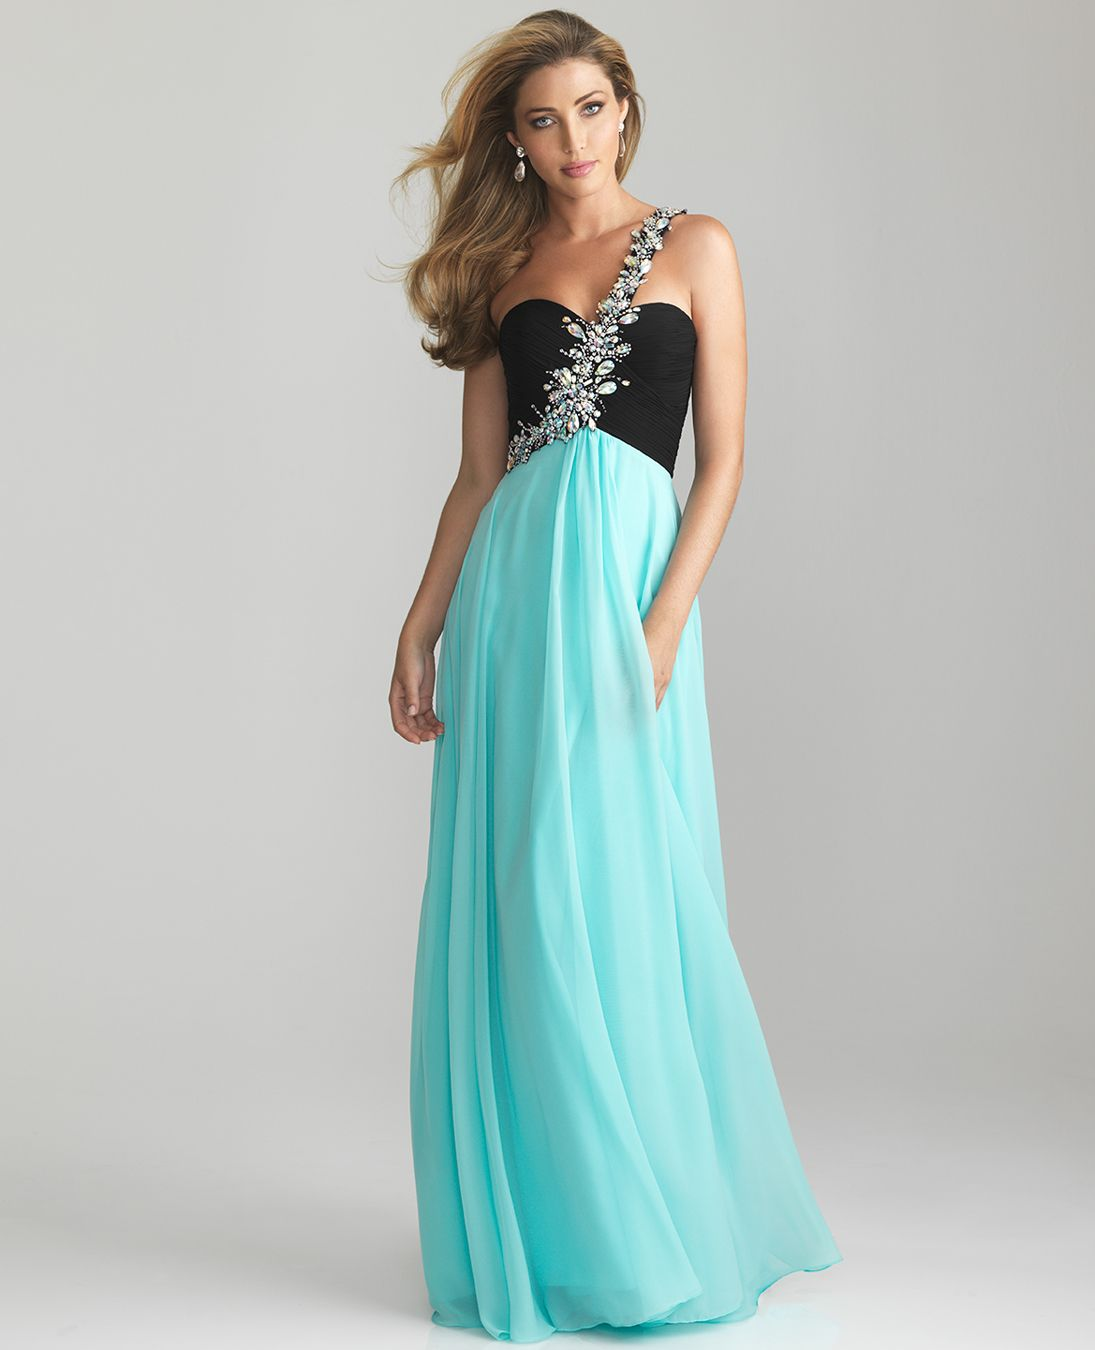 Top 25 ideas about prom on Pinterest | Long prom dresses, One ...